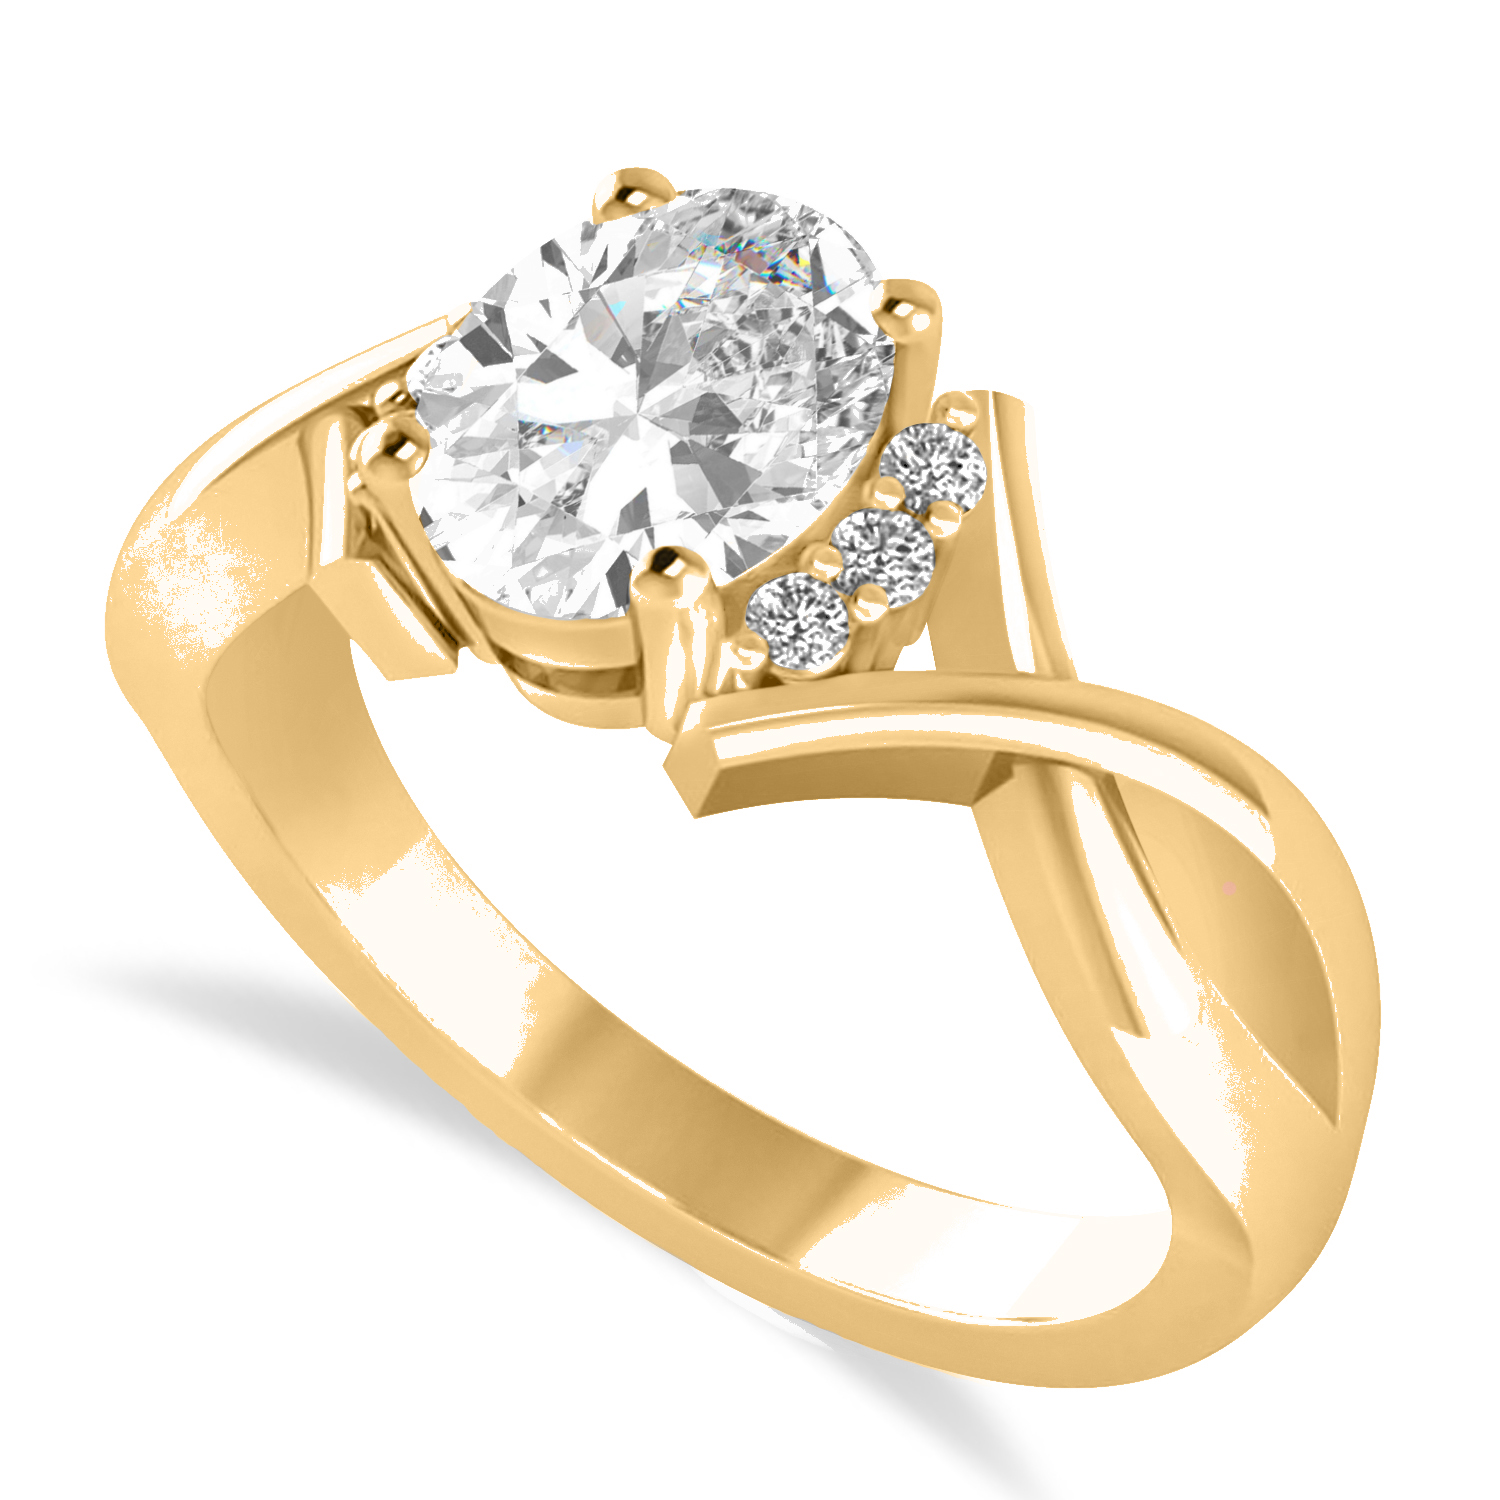 Oval Cut Diamond Engagement Ring With Split Shank 14k Yellow Gold (1.59 ct)